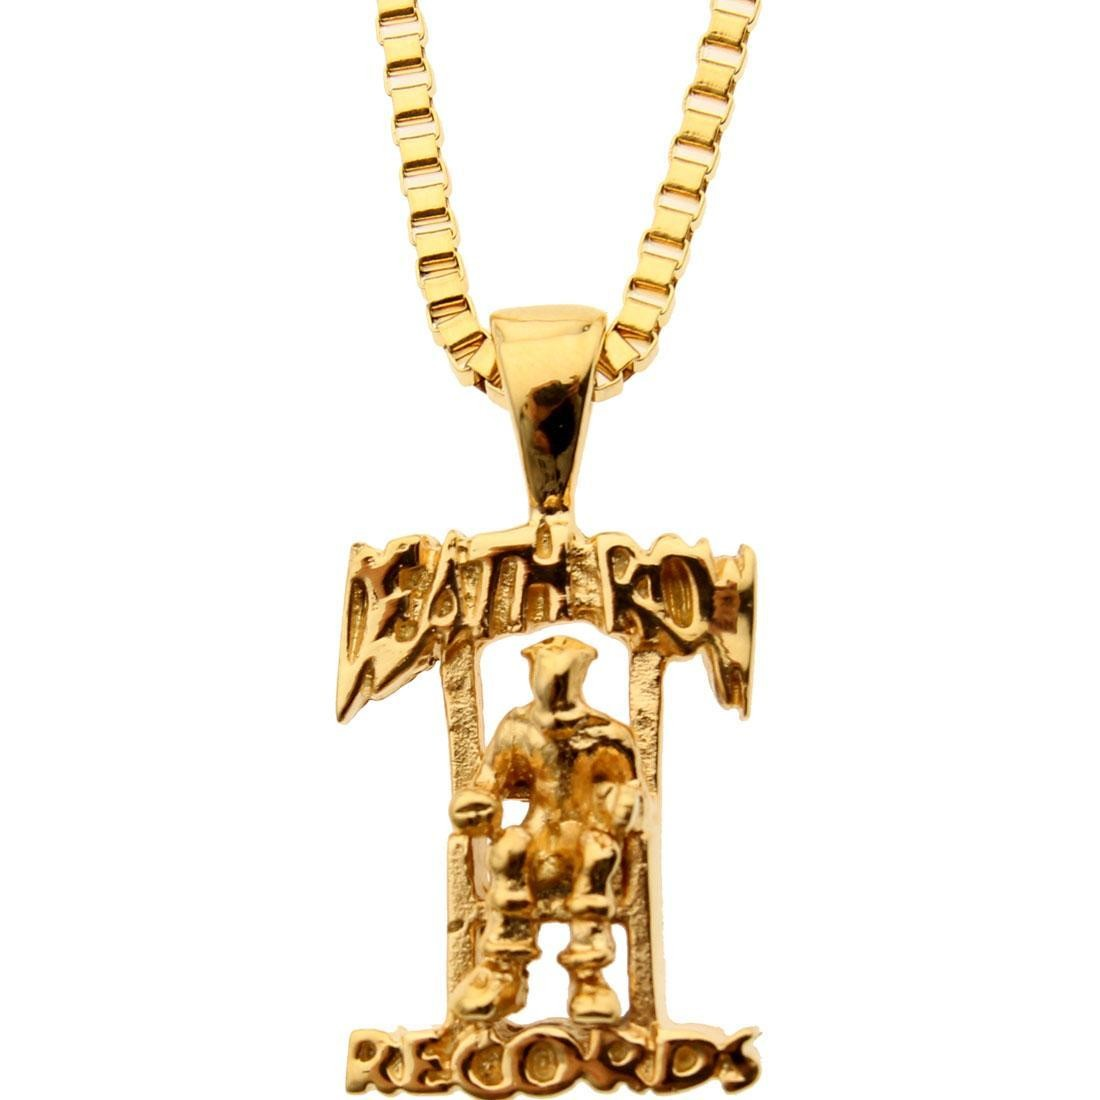 Veritas Aequitas Death Row Necklace (gold)